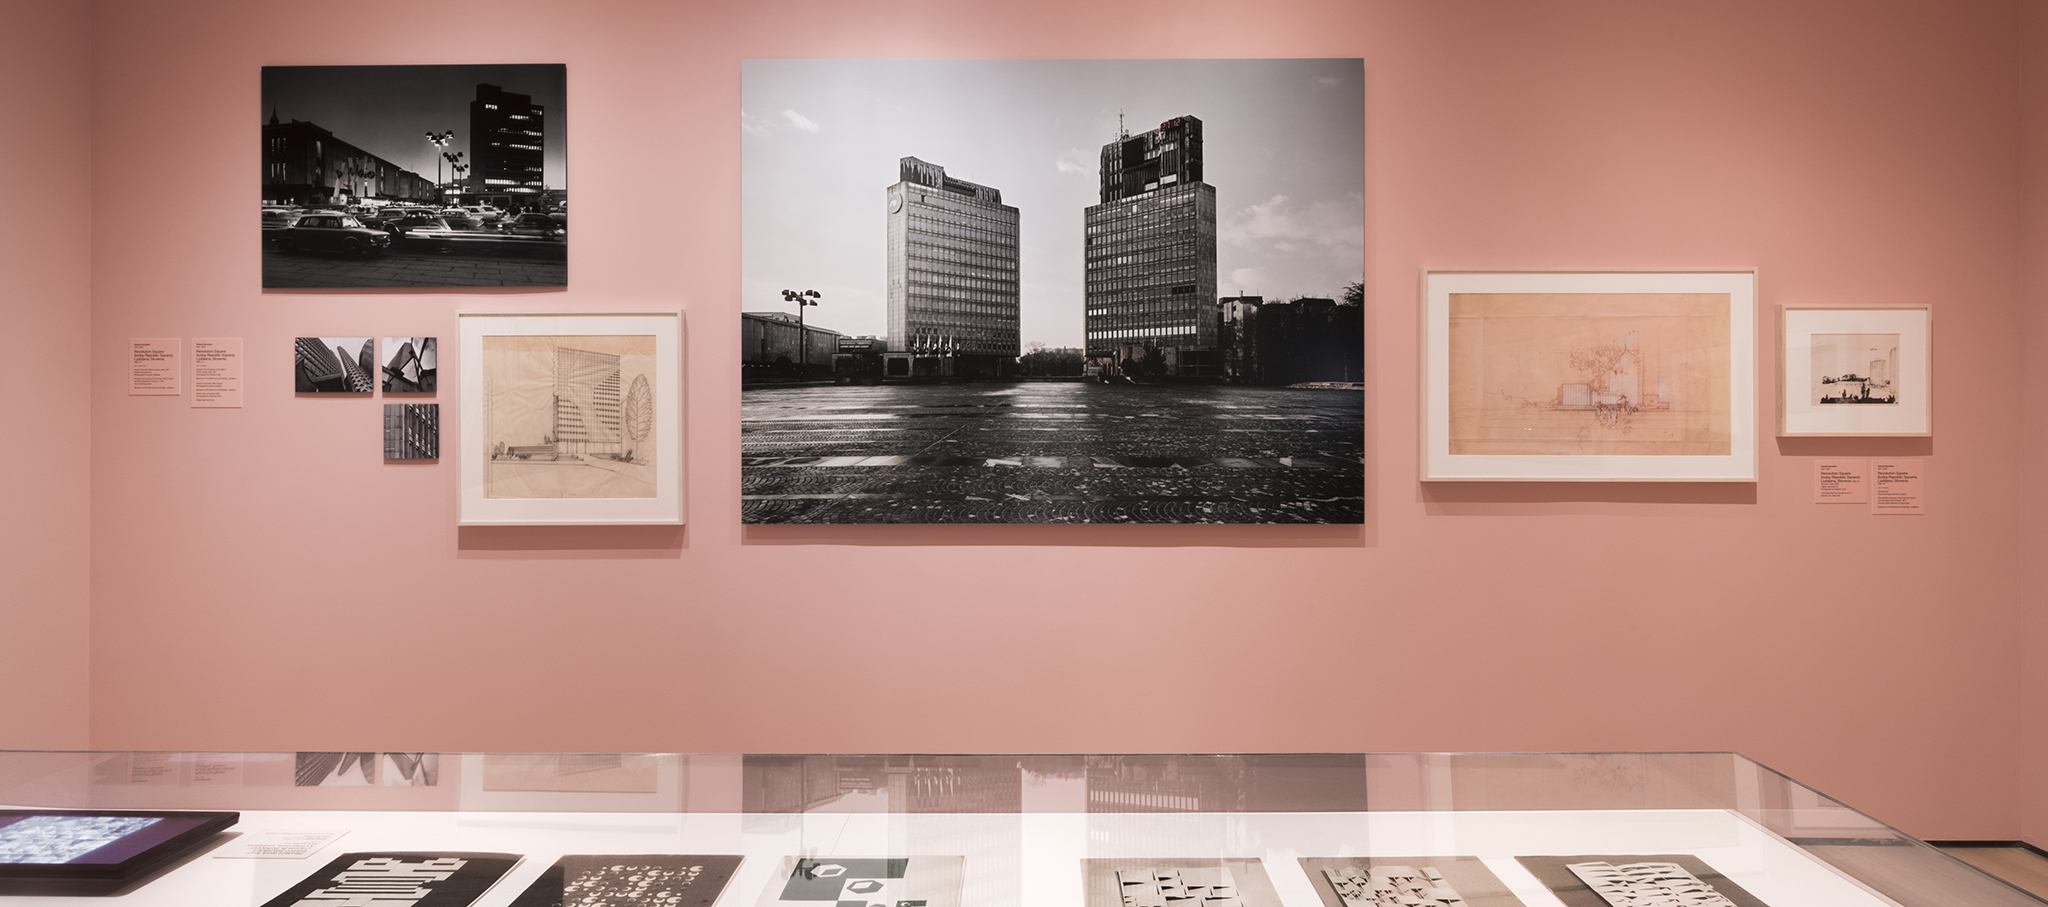 Installation view of Toward a Concrete Utopia: Architecture in Yugoslavia, 1948–1980, The Museum of Modern Art, New York, July 15, 2018–January 13, 2019. © 2018 The Museum of Modern Art. Photo: Martin Seck. Courtesy of MoMA